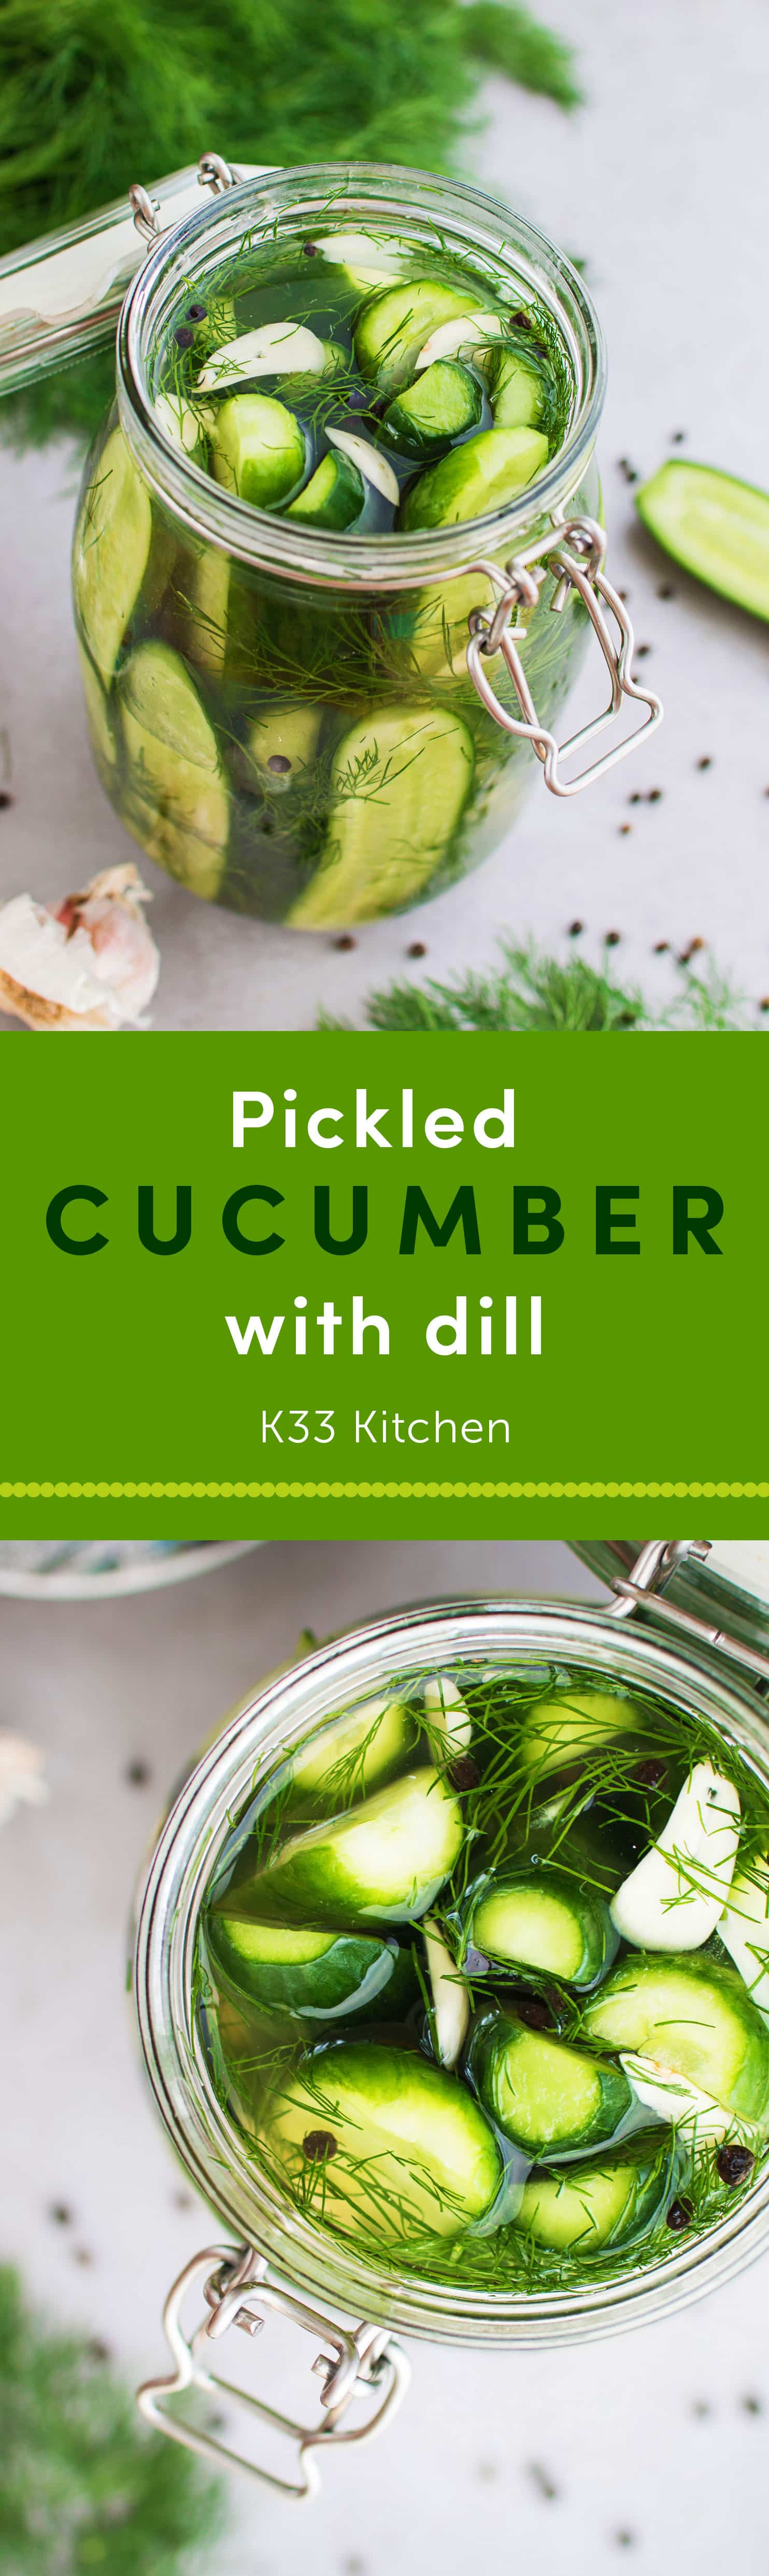 Pickled cucumber with dill